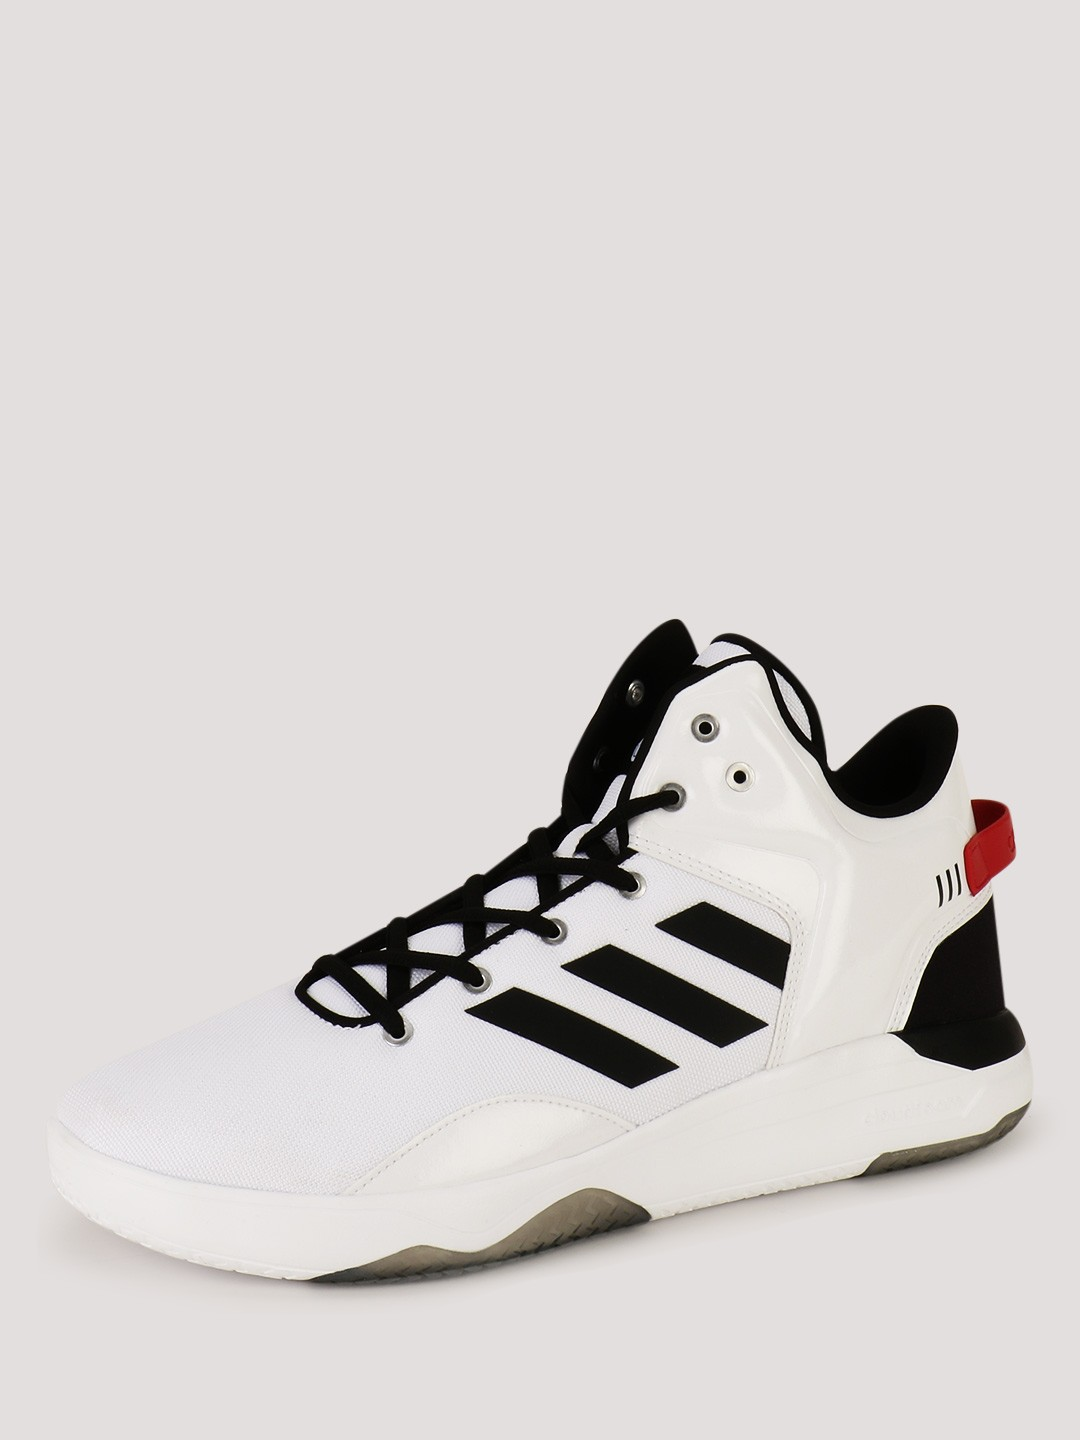 Adidas Neo Cloudfoam Revival Mid Shoes